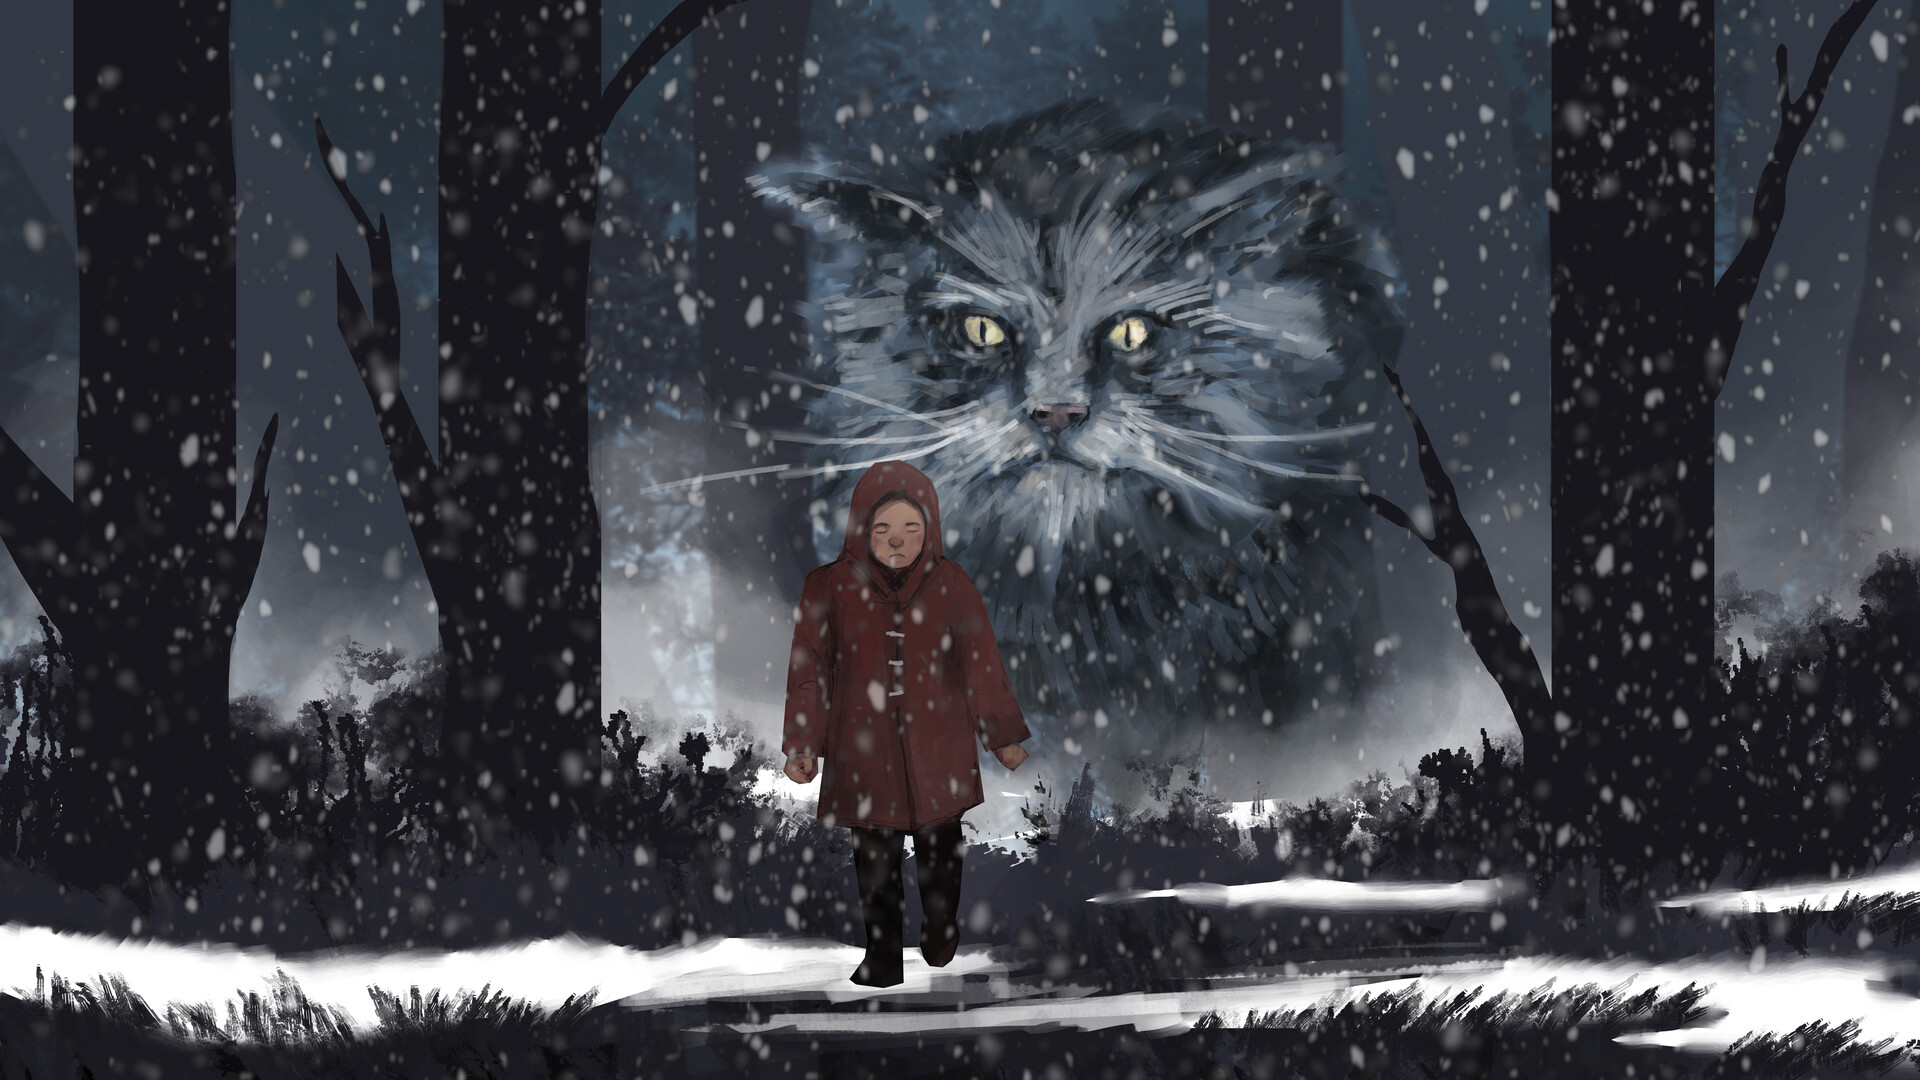 Concept art by Samuel Allan for the PBS rendition of traditional Icelandic folklore - The Yule Cat.